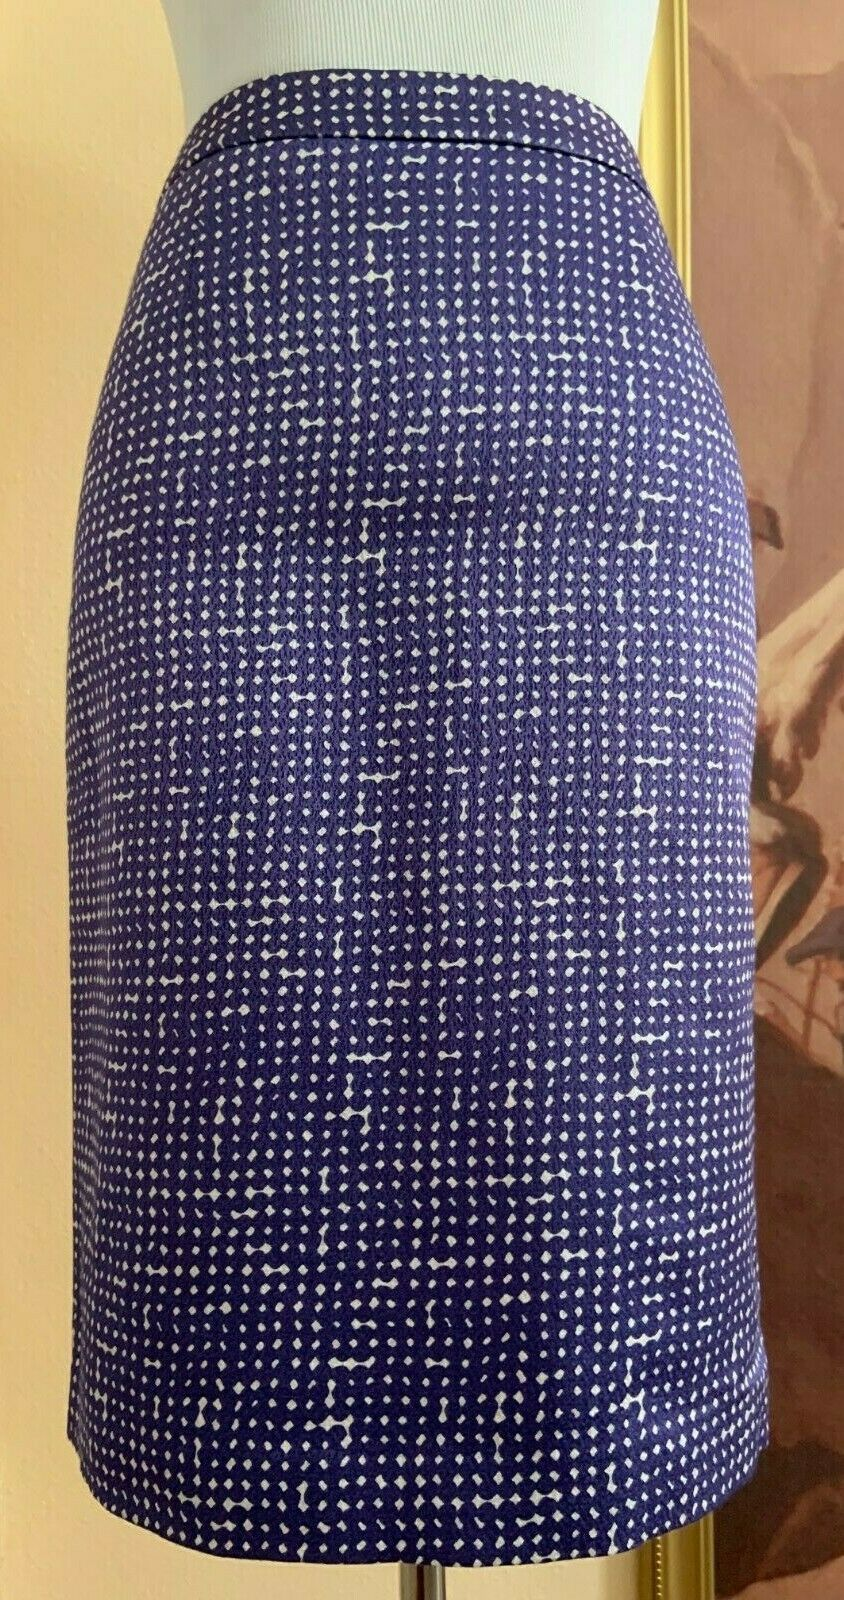 Tory Burch Designer Printed Purple Pencil Skirt Size 0 cotton wool silk blend